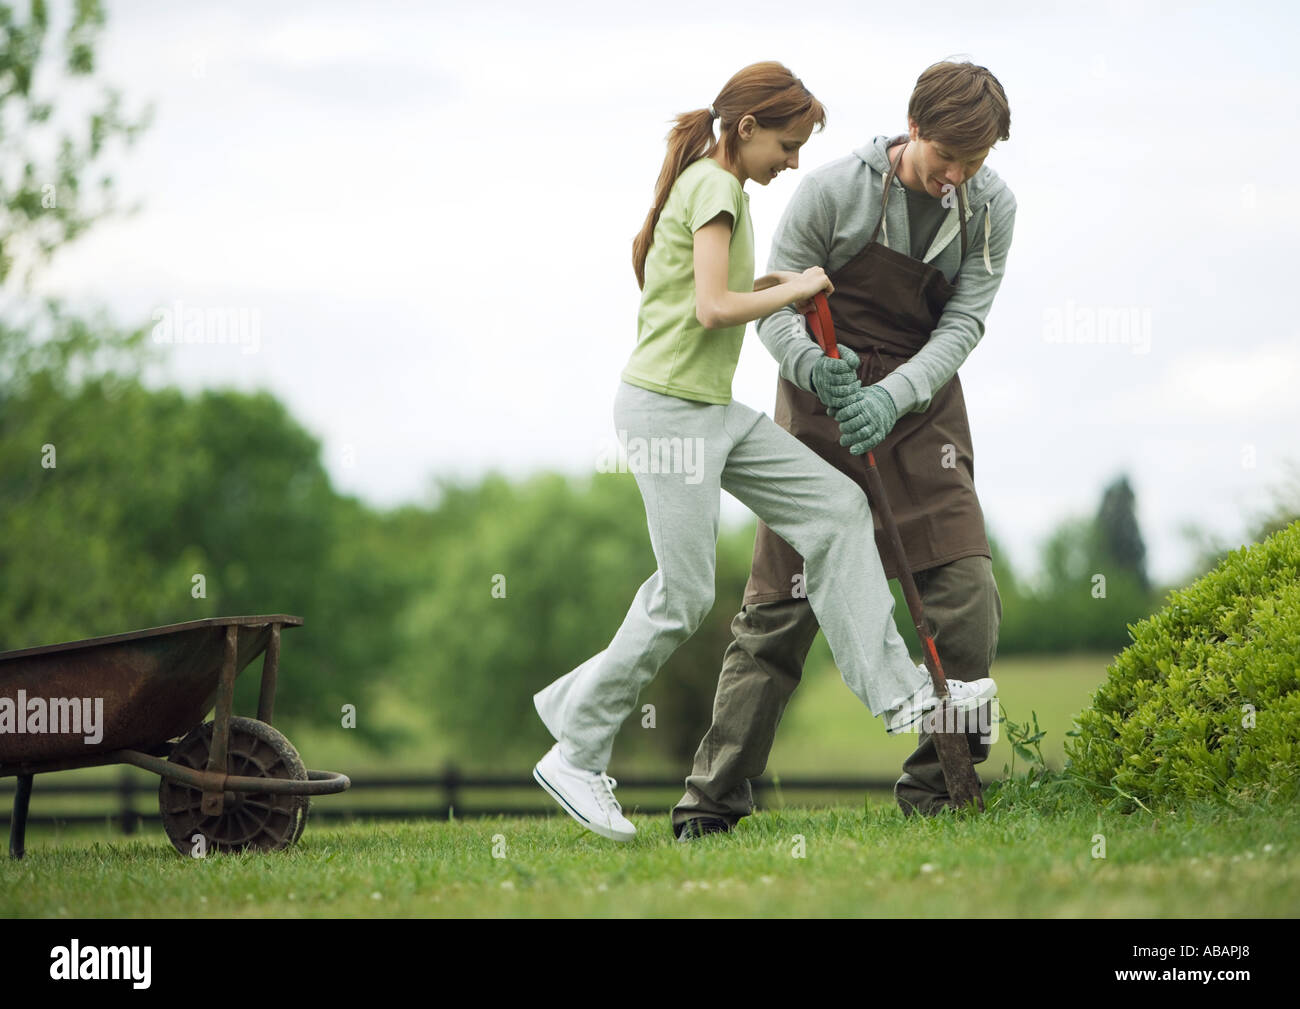 Man helping girl dig in yard - Stock Image